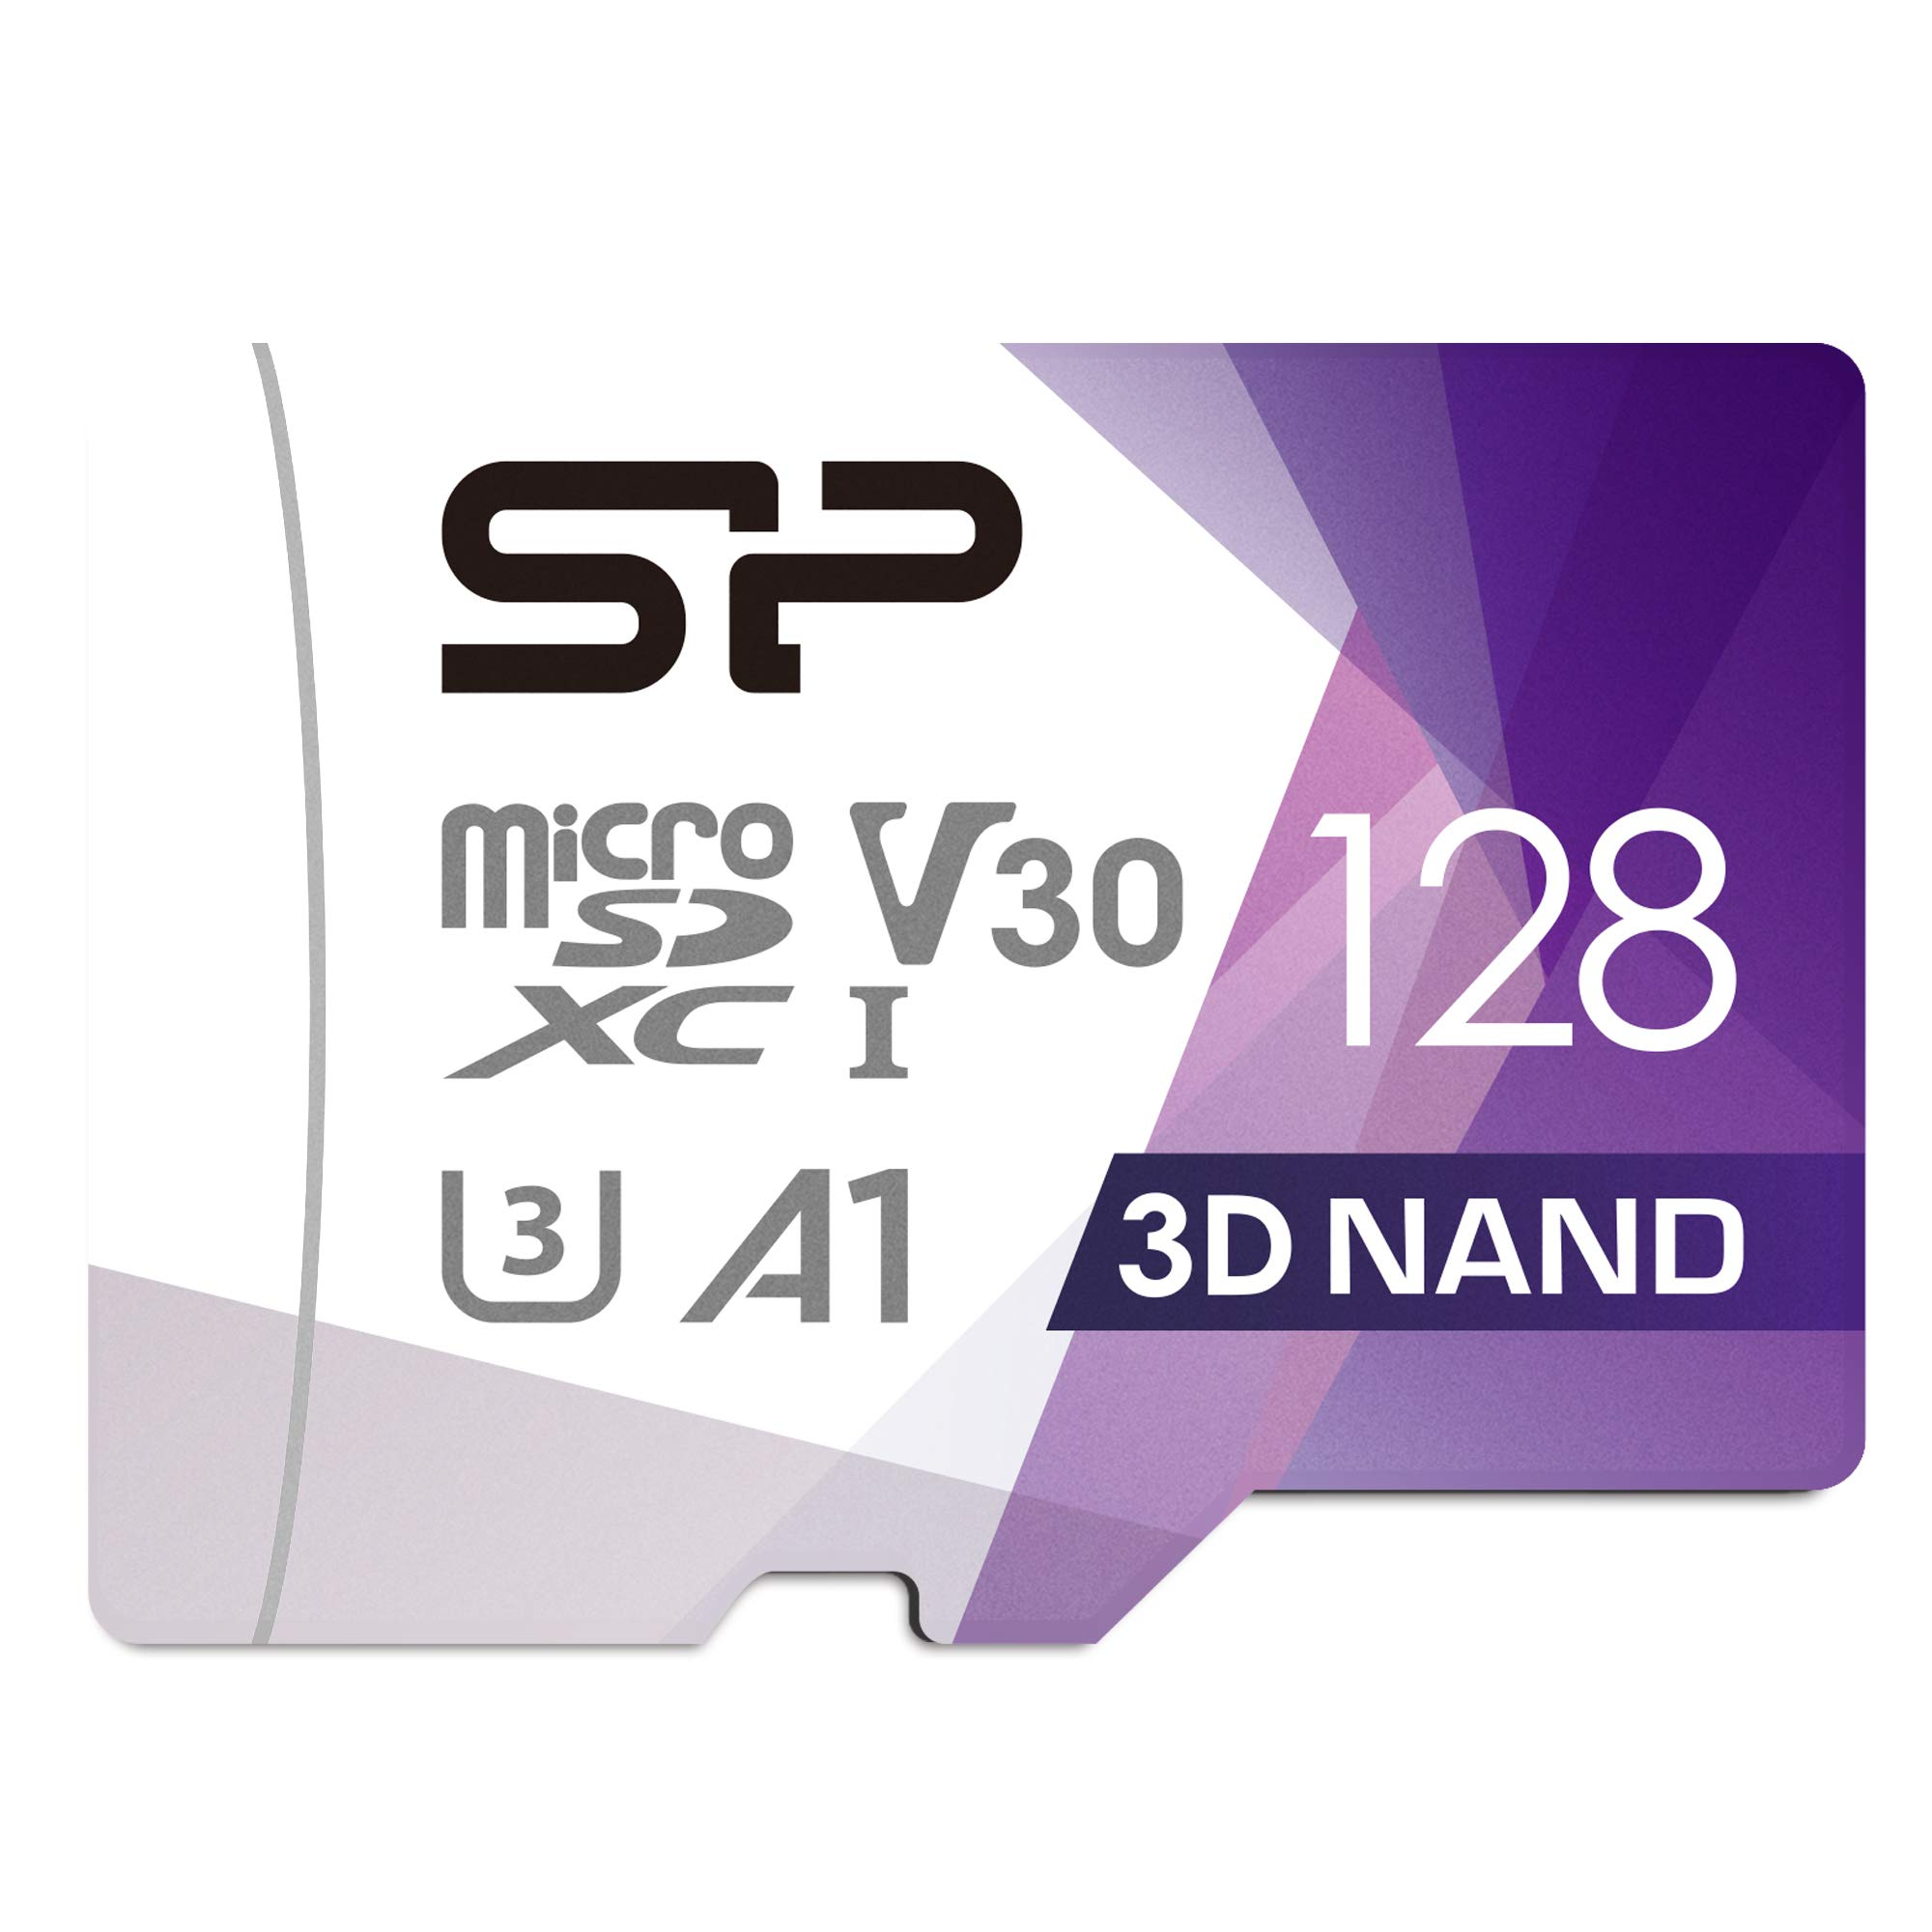 Silicon Power 128GB R/W up to 100/ 80MB/s Superior Pro Micro SDXC UHS-I (U3), V30 4K A1, High Speed MicroSD Card with Adapter by SP Silicon Power